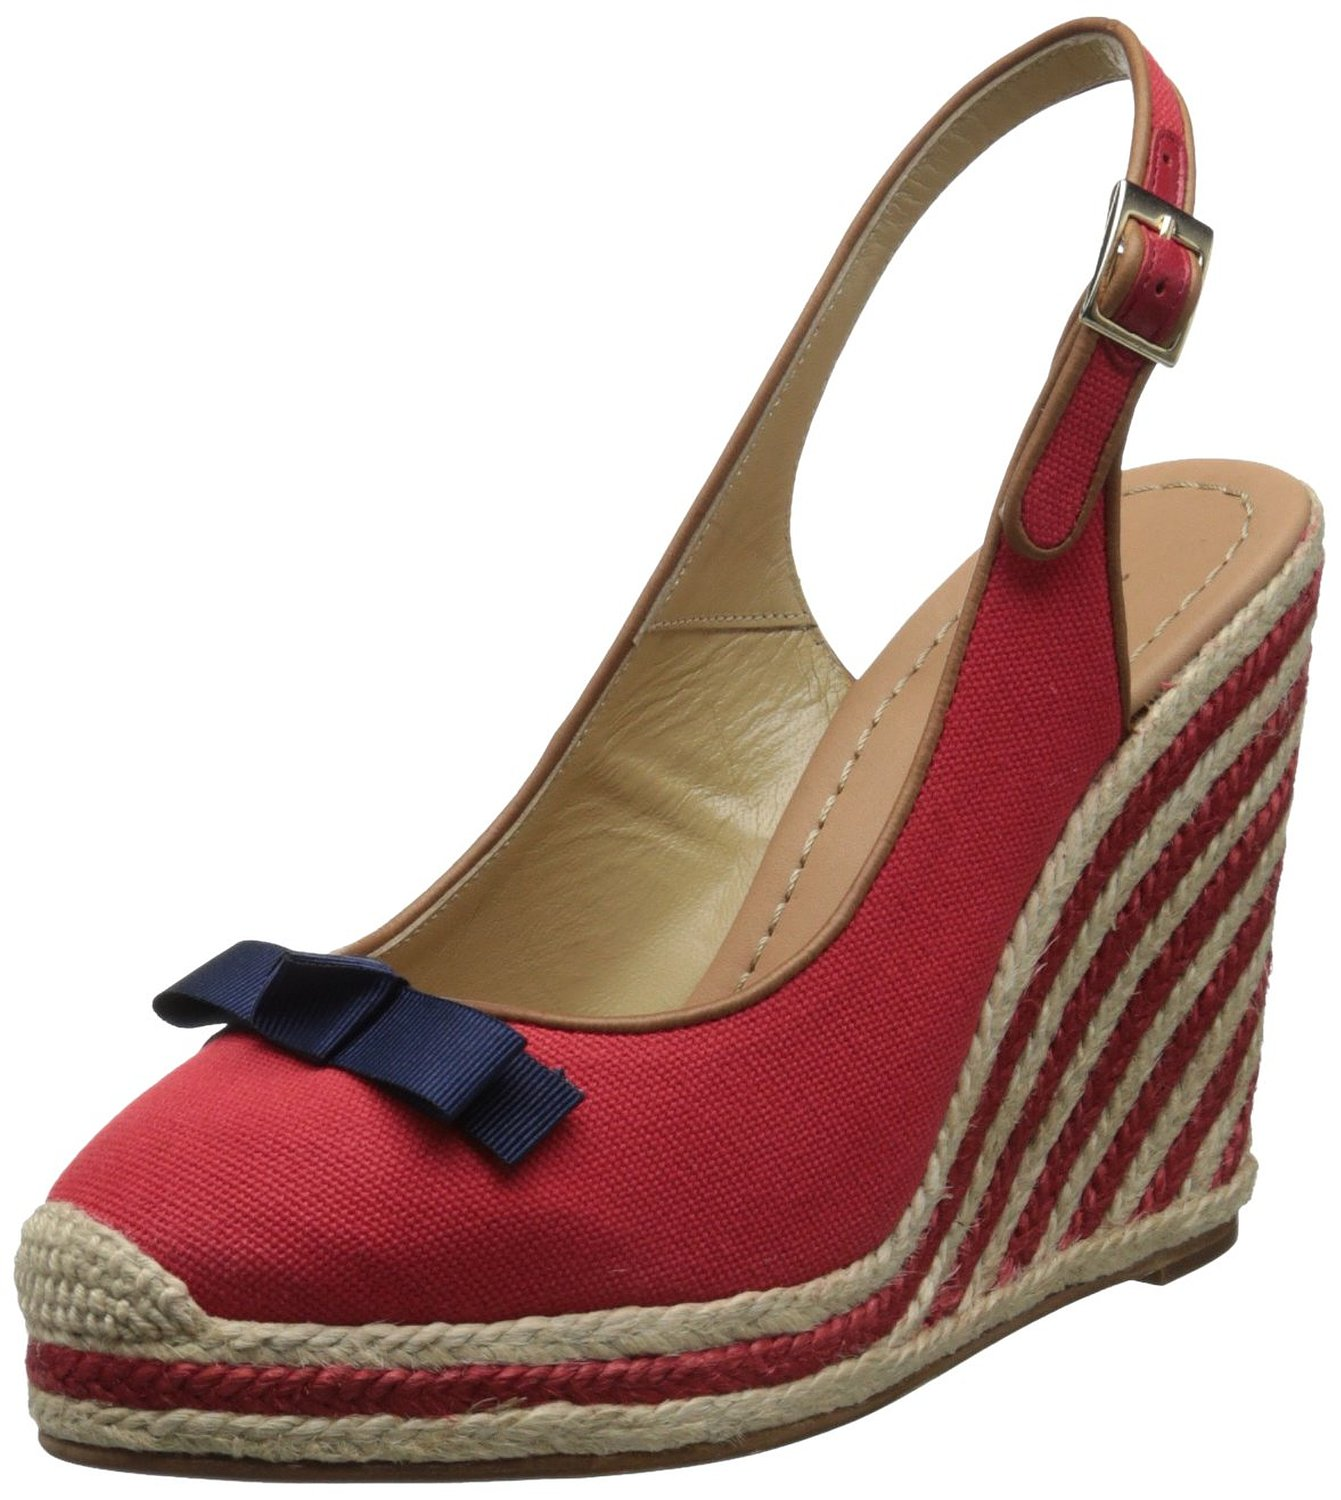 Amazon.com: kate spade new york Women's Sweetie Espadrille Sandal: Shoes